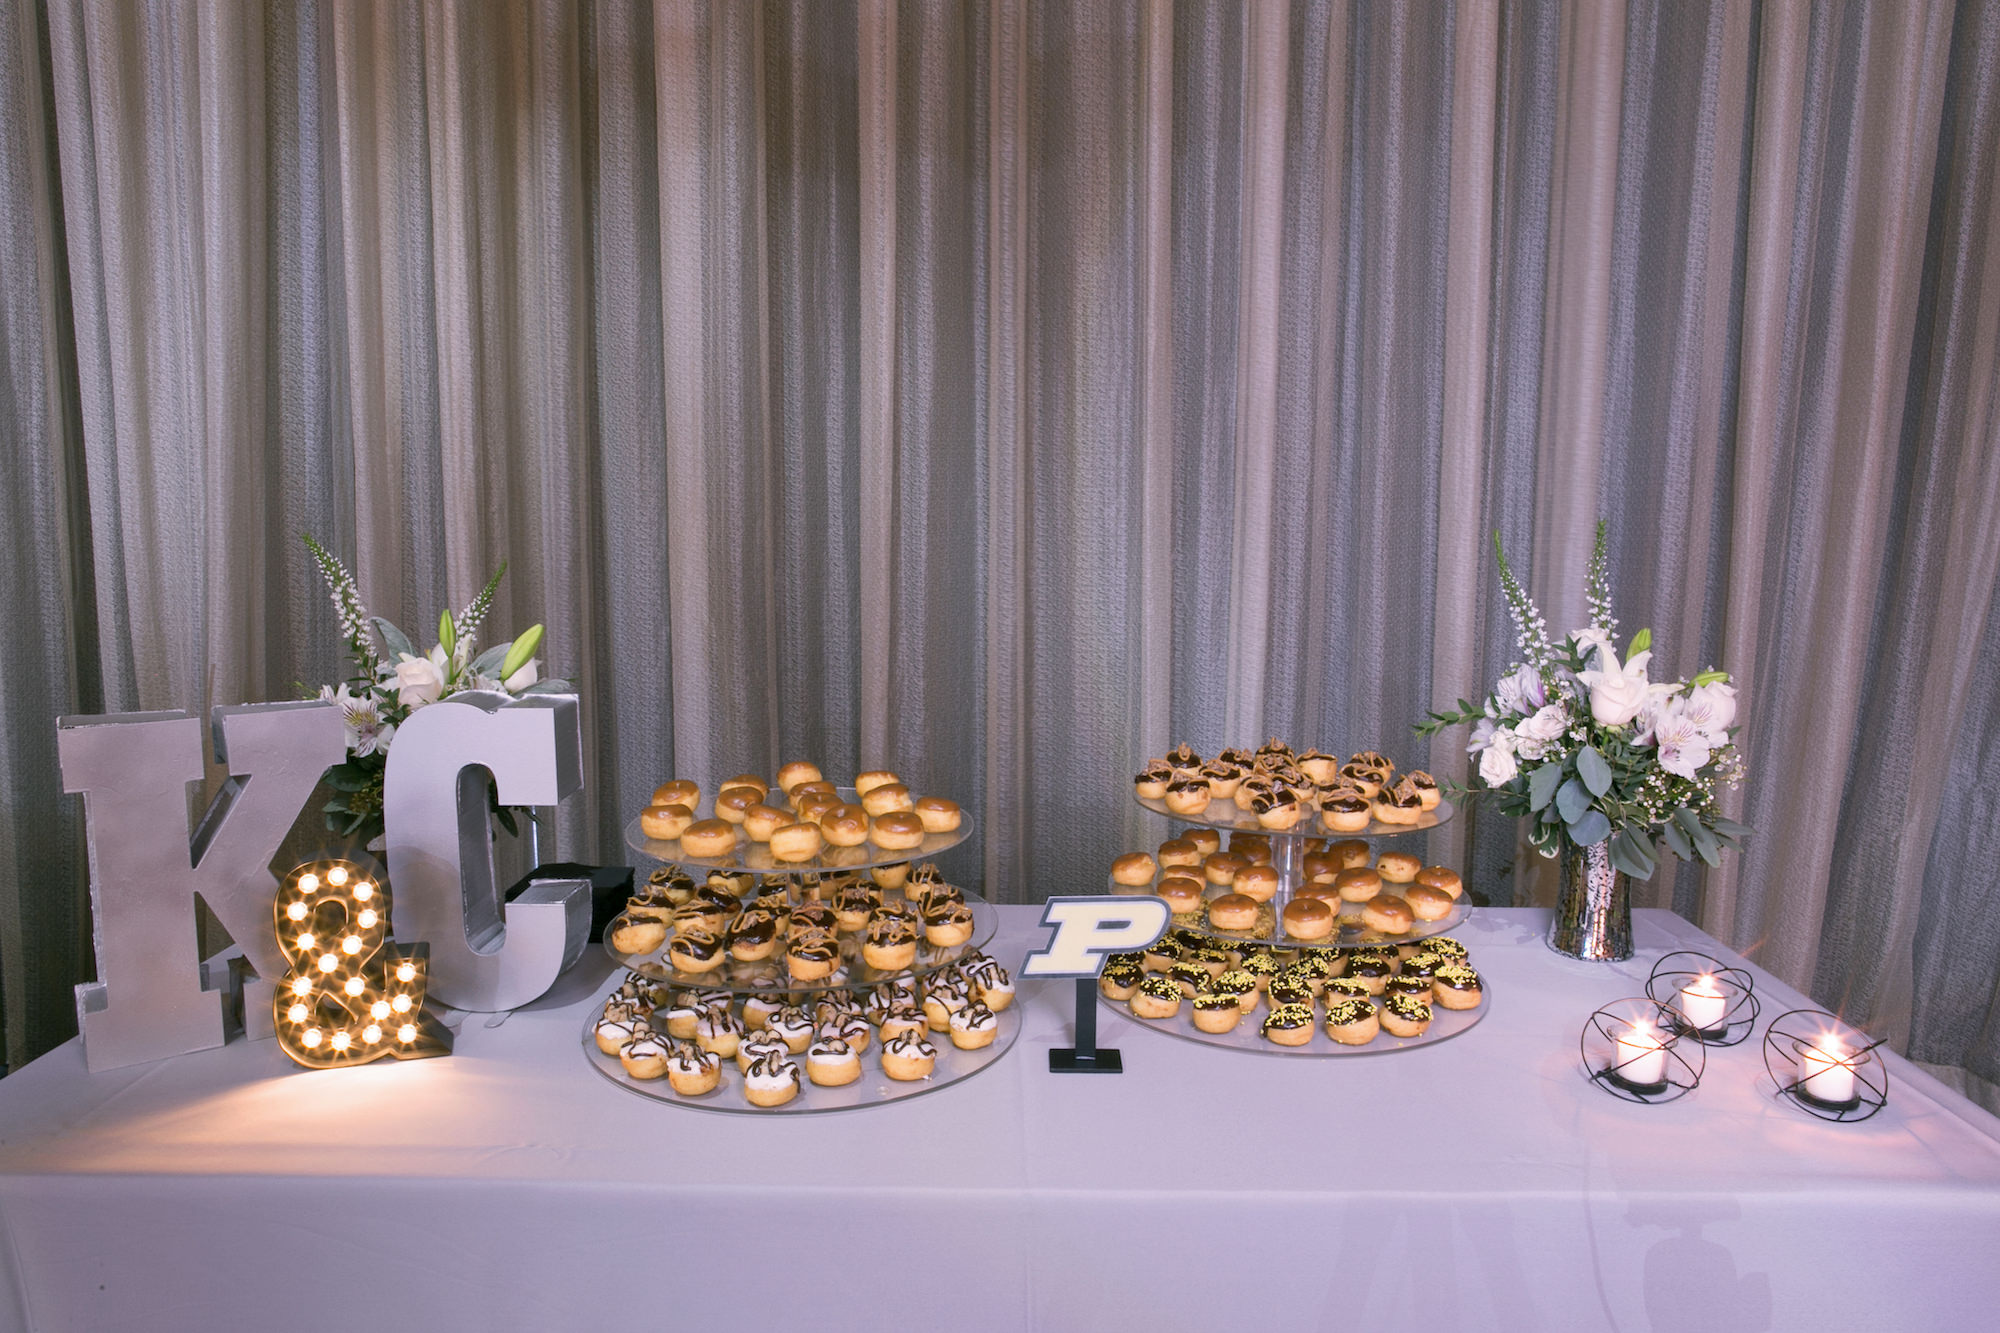 Three Tier Dishes of Cream Puffs Dessert Table on Silver Linen with Large Metal K & C Letters   Tampa Bay Wedding Photographer Carrie Wildes Photography   Wedding Planner Love Lee Lane